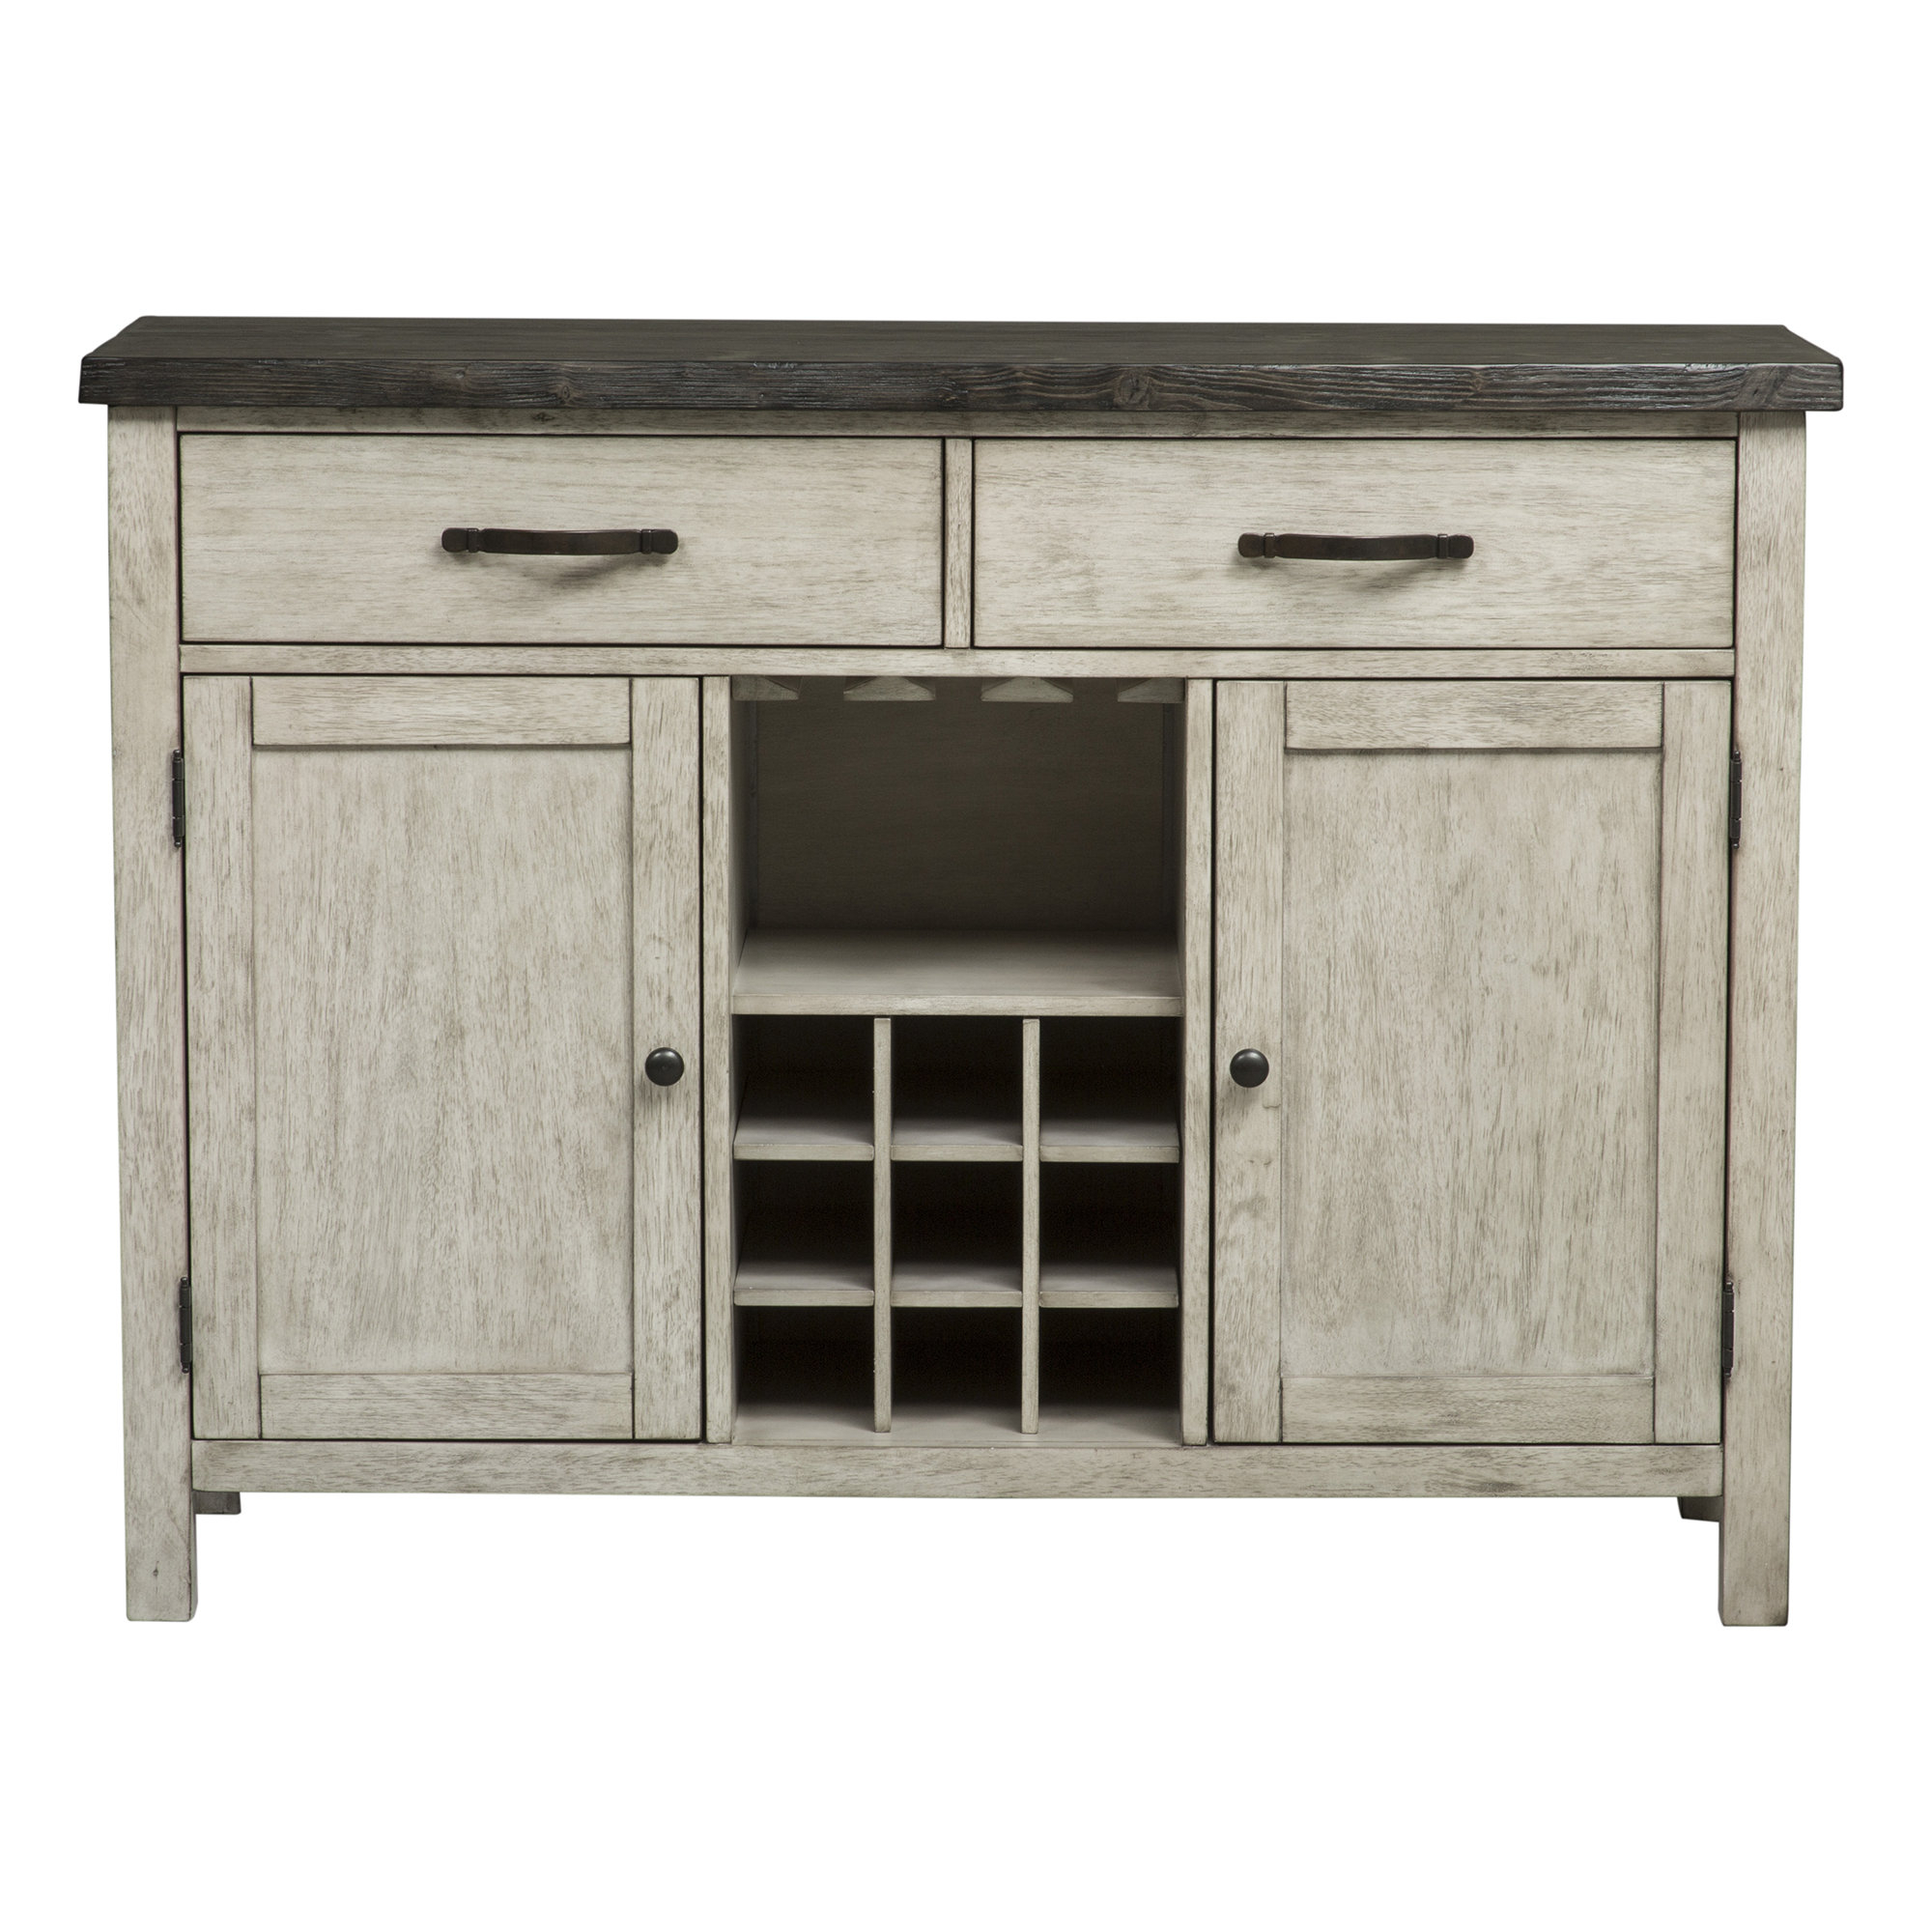 Gray Wood Sideboards & Buffets | Joss & Main For Cazenovia Charnley Sideboards (View 4 of 20)